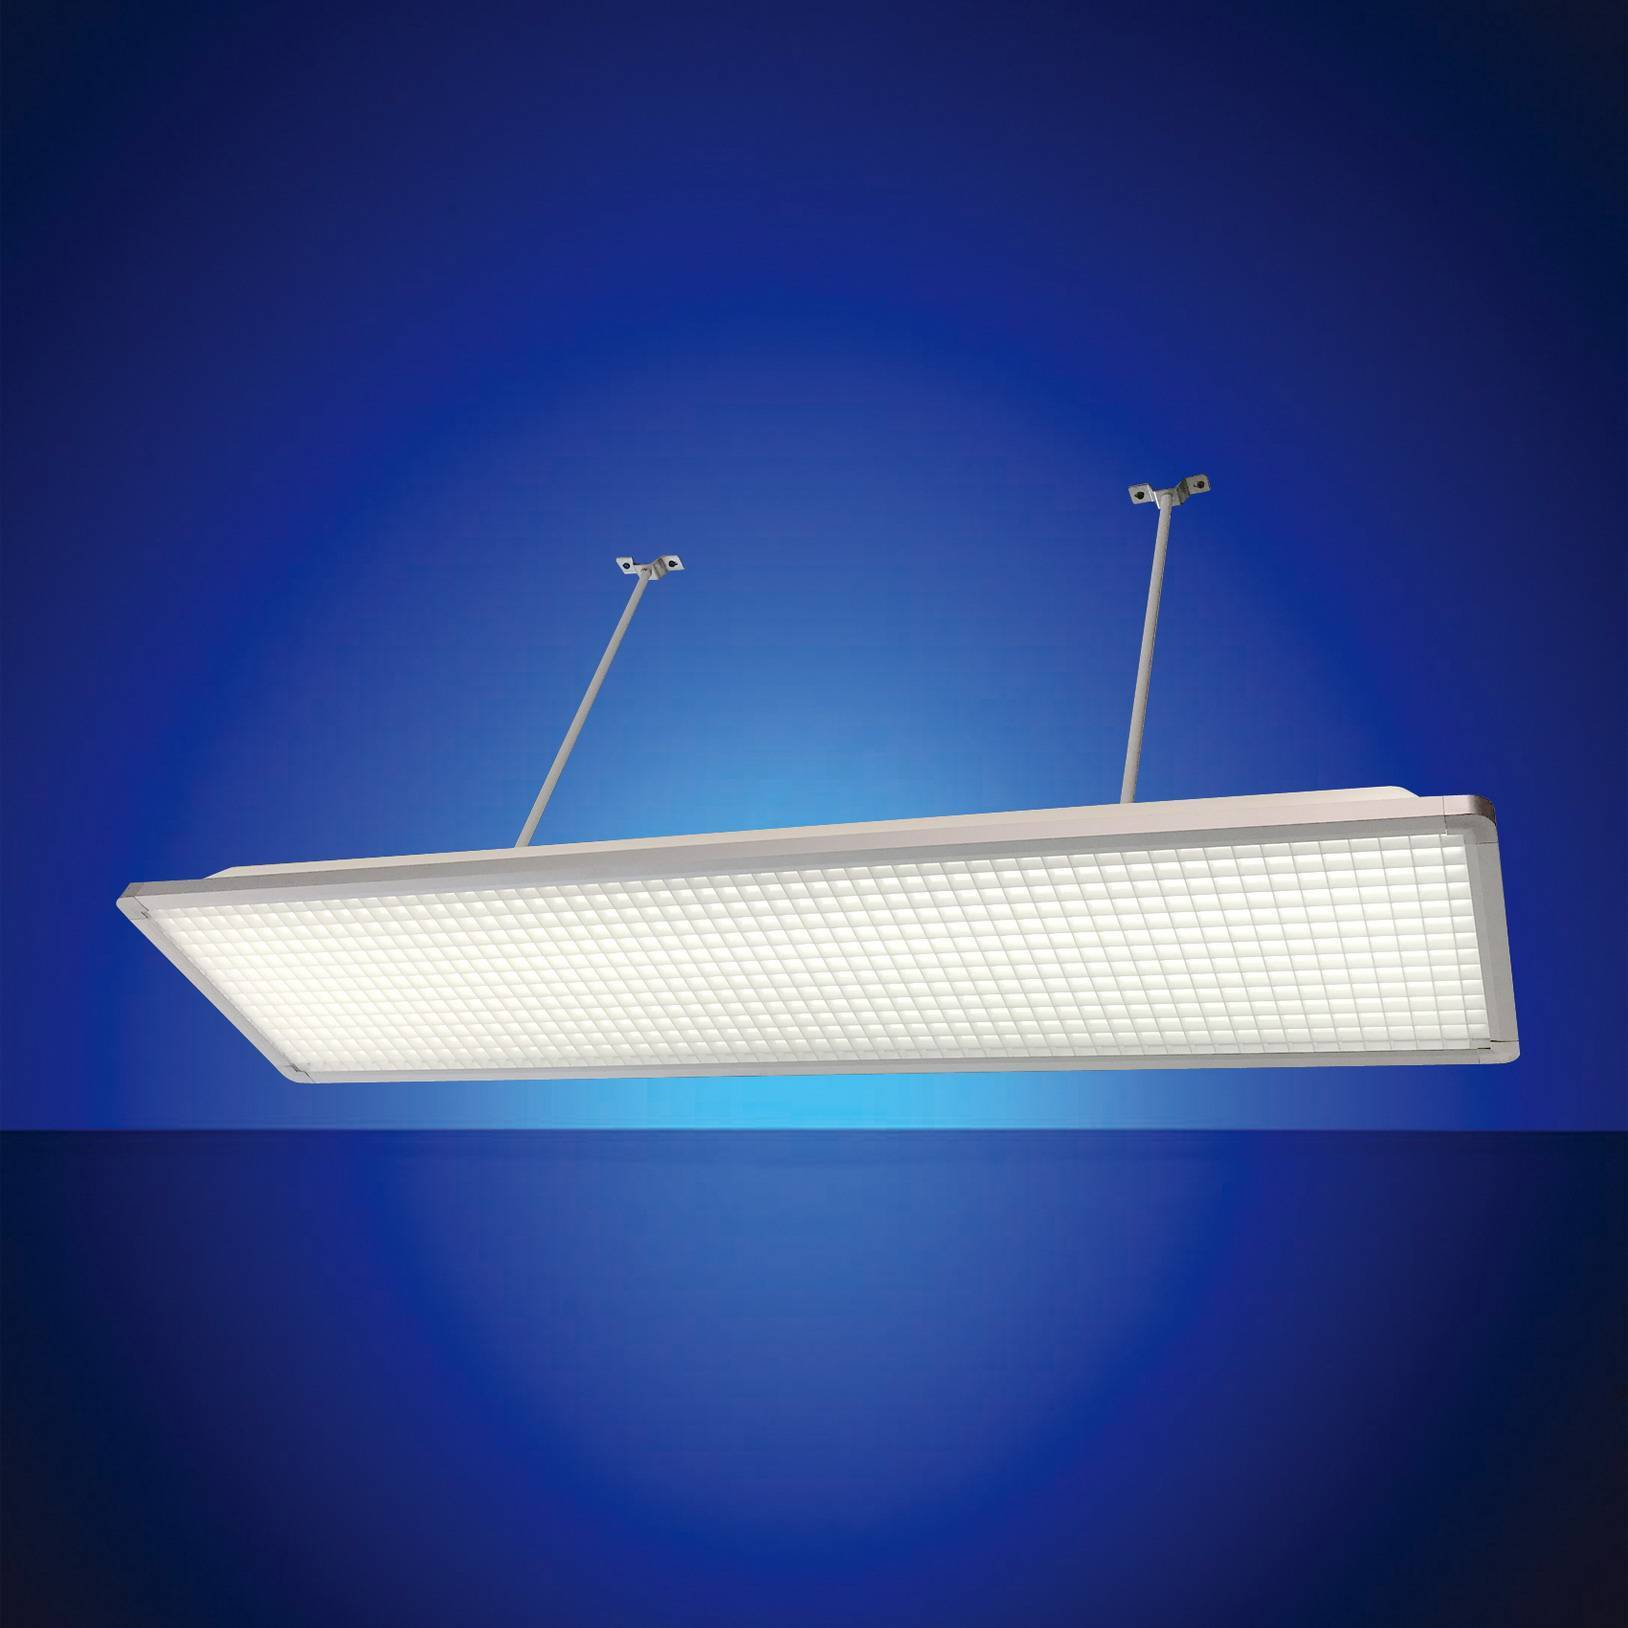 36W Suspendeded LED Light Fixture Use for Office Building,School,Indoor Eye-protection Lamp,CE,LVD,EMC,LVD,ISO9001